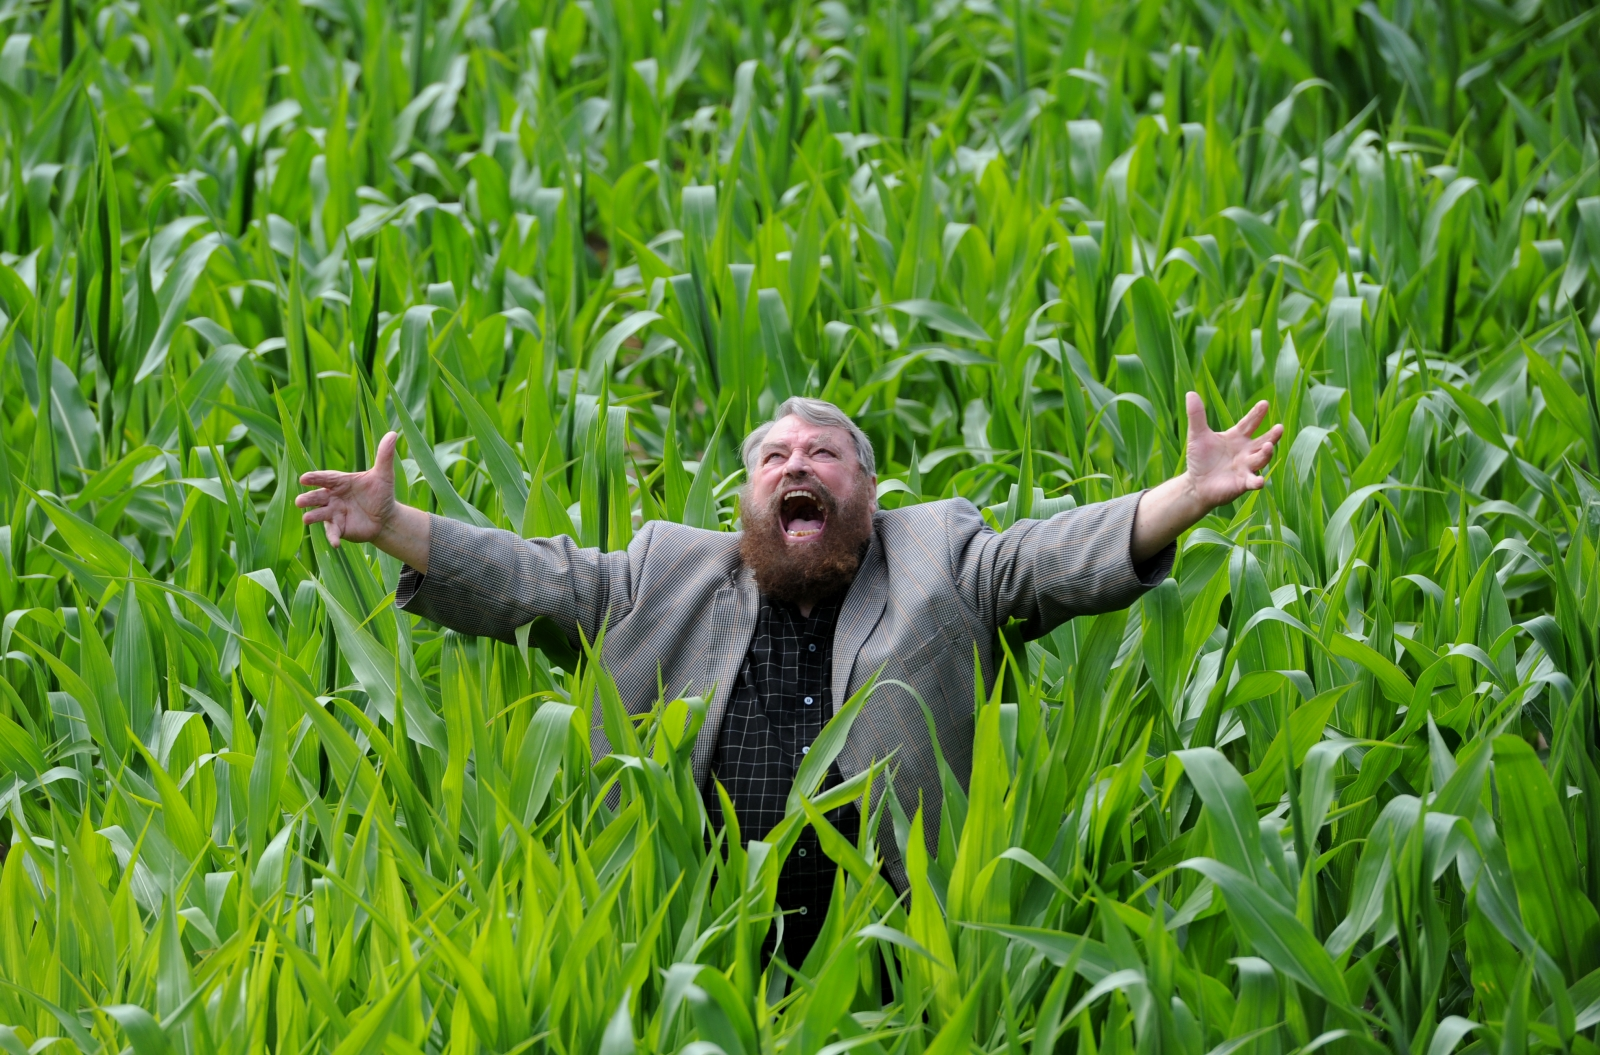 Brian Blessed collapsed on stage during King Lear performance at Holy Trinity Church theatre